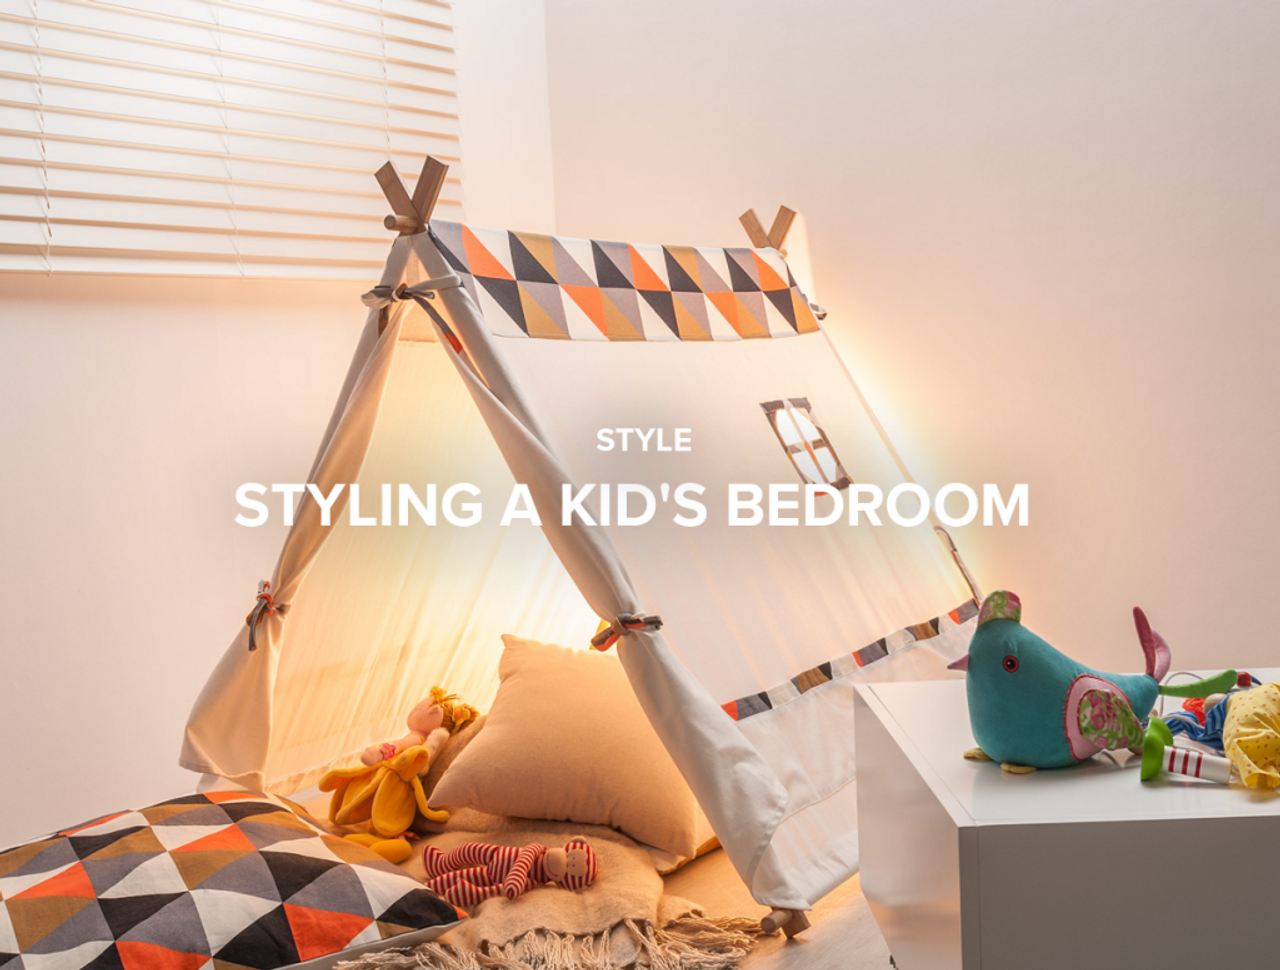 Styling a Kid's Bedroom